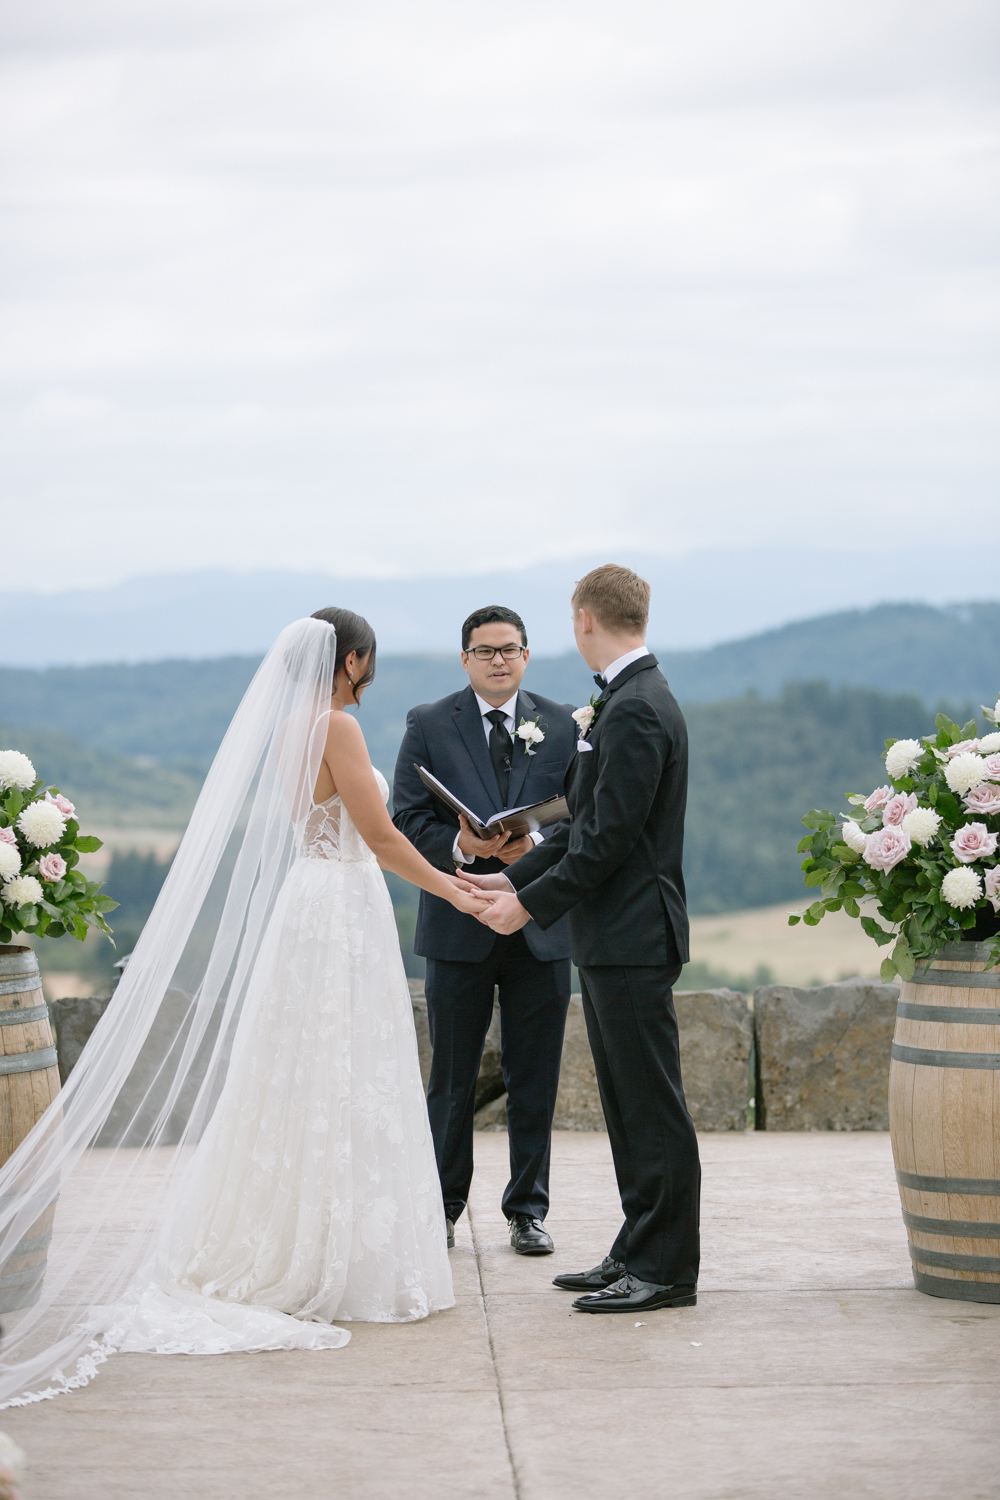 Youngberg Hill Vineyard Wedding in Wine Country Oregon - Corrie Mick Photography-275.jpg